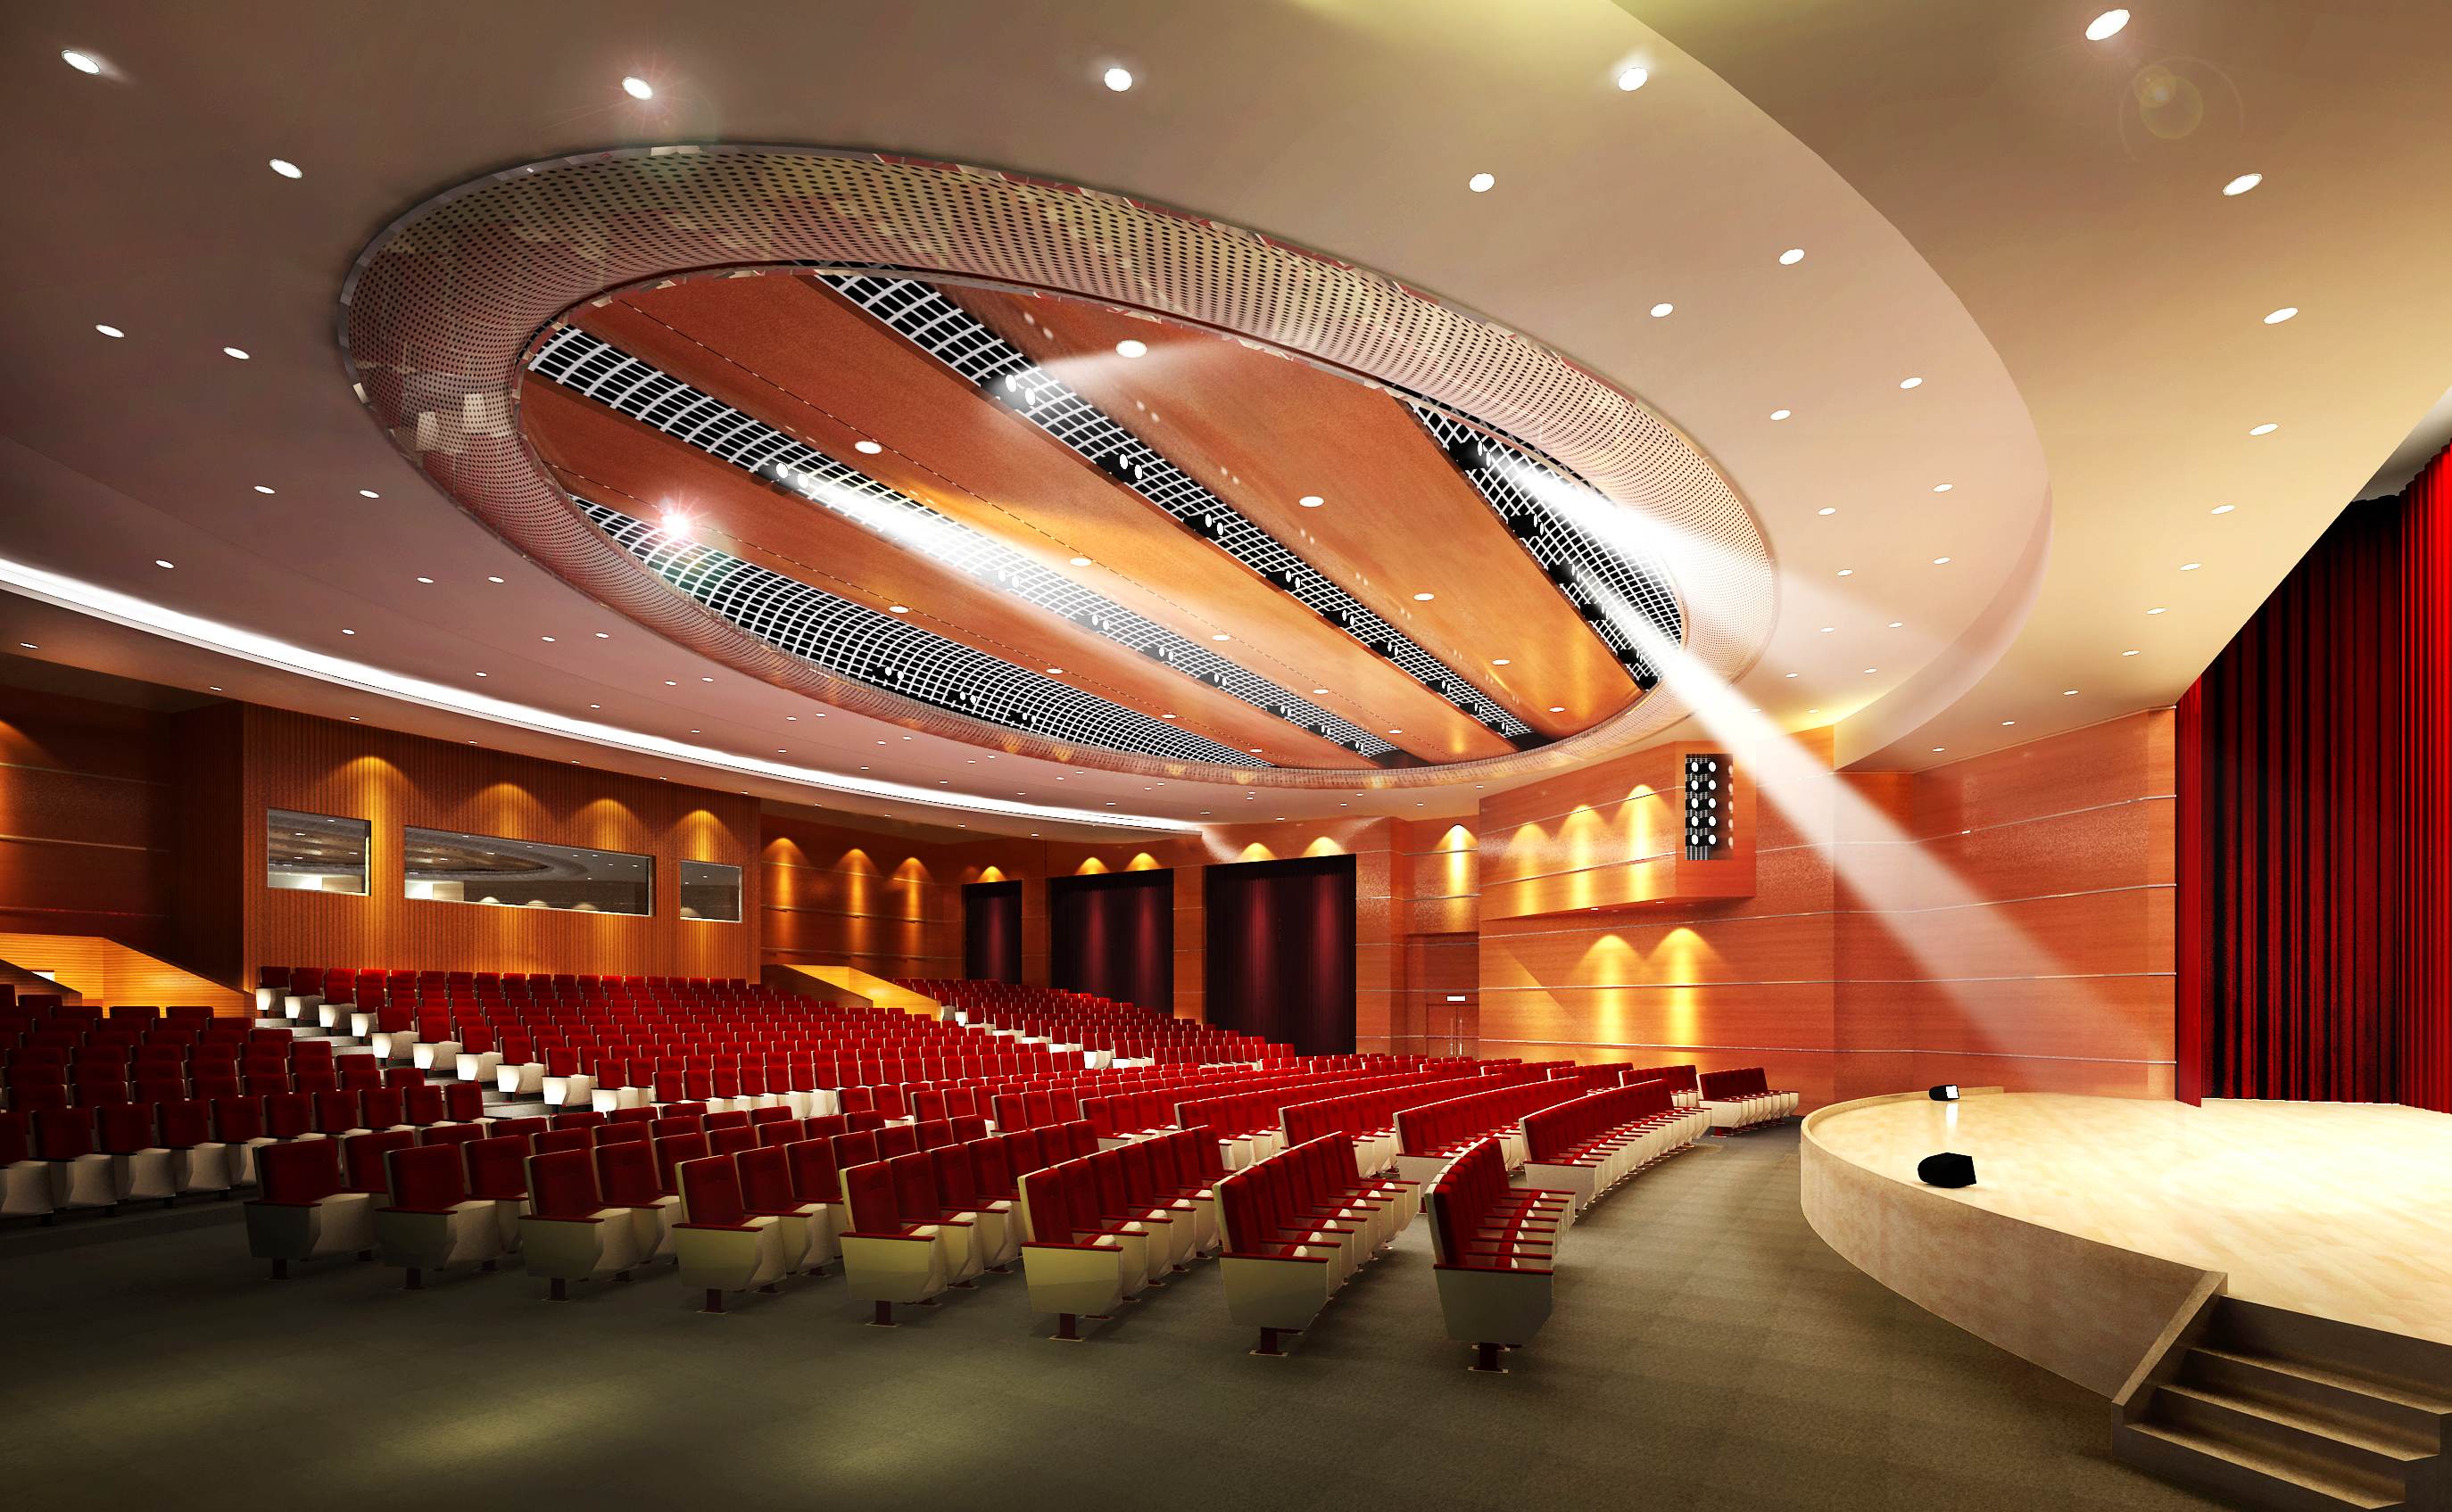 auditorium room007 3d model max 125235